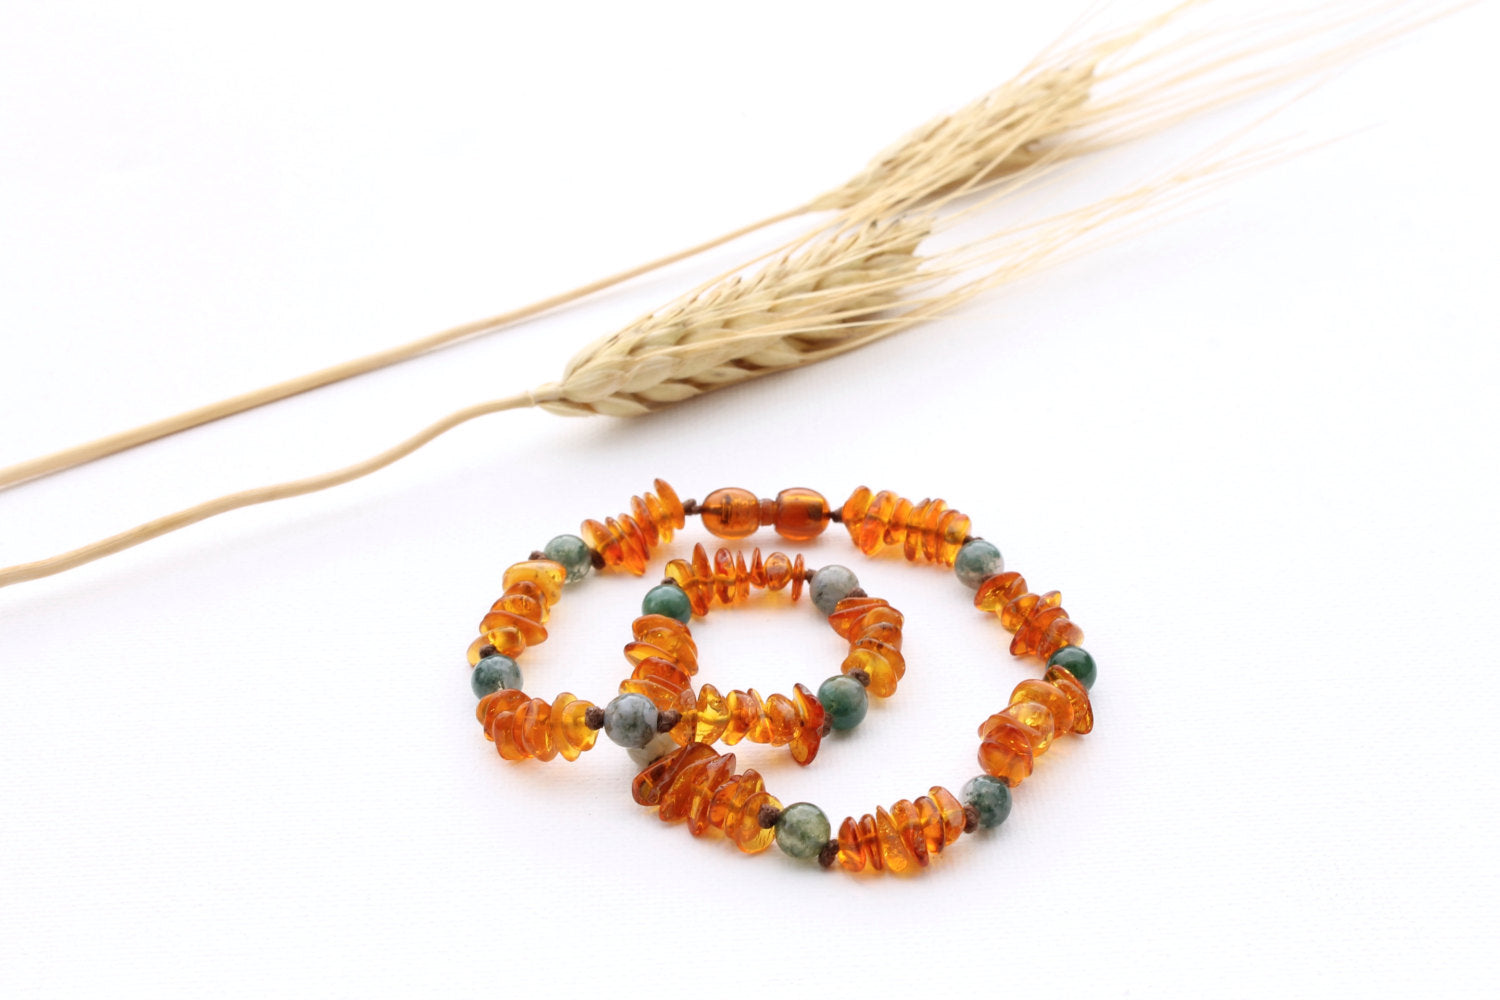 Honey Baltic Amber Teething Necklace with Moss Agate